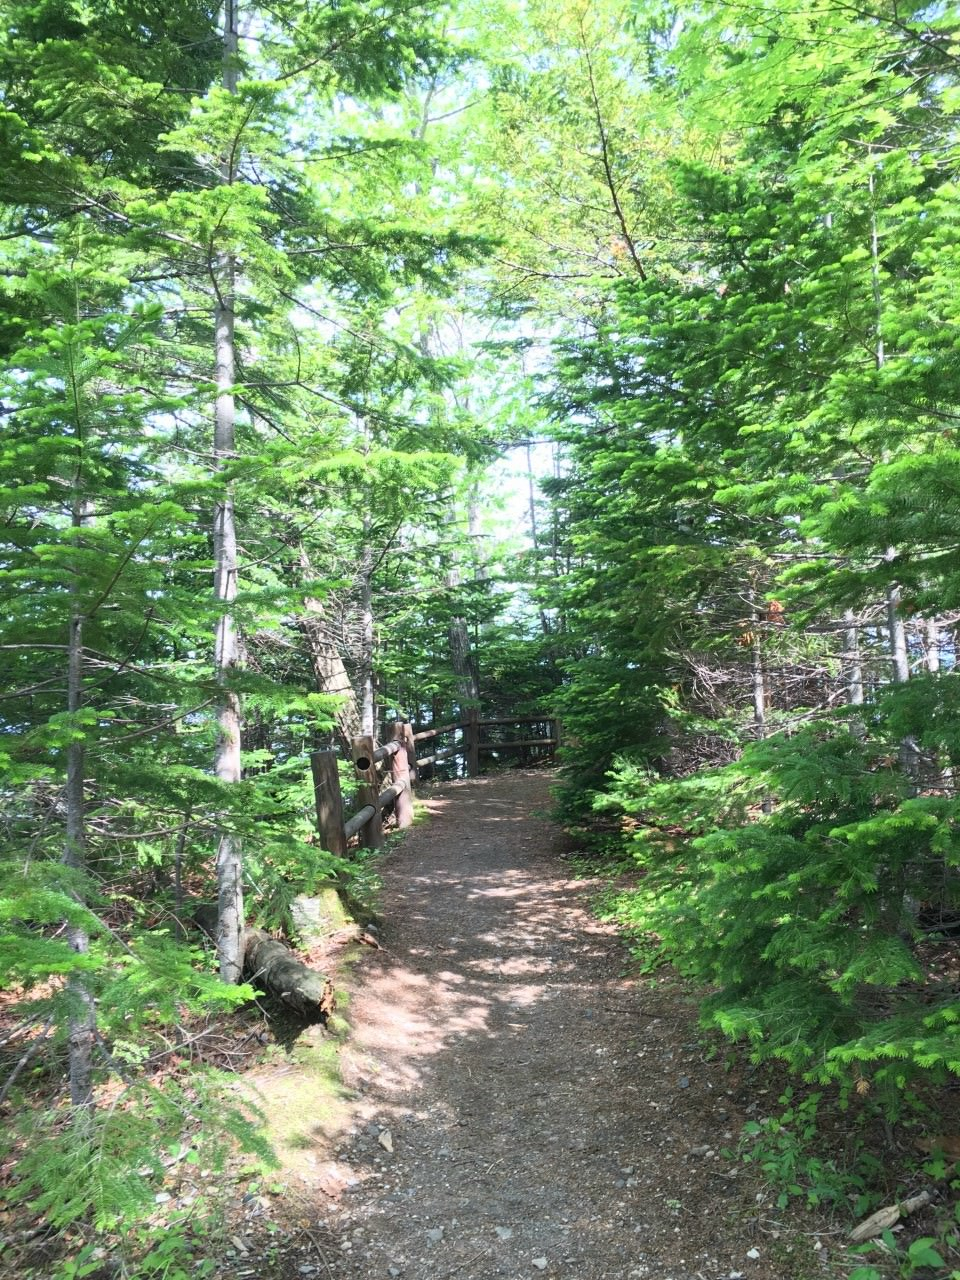 Trekking through the forrest in Furano